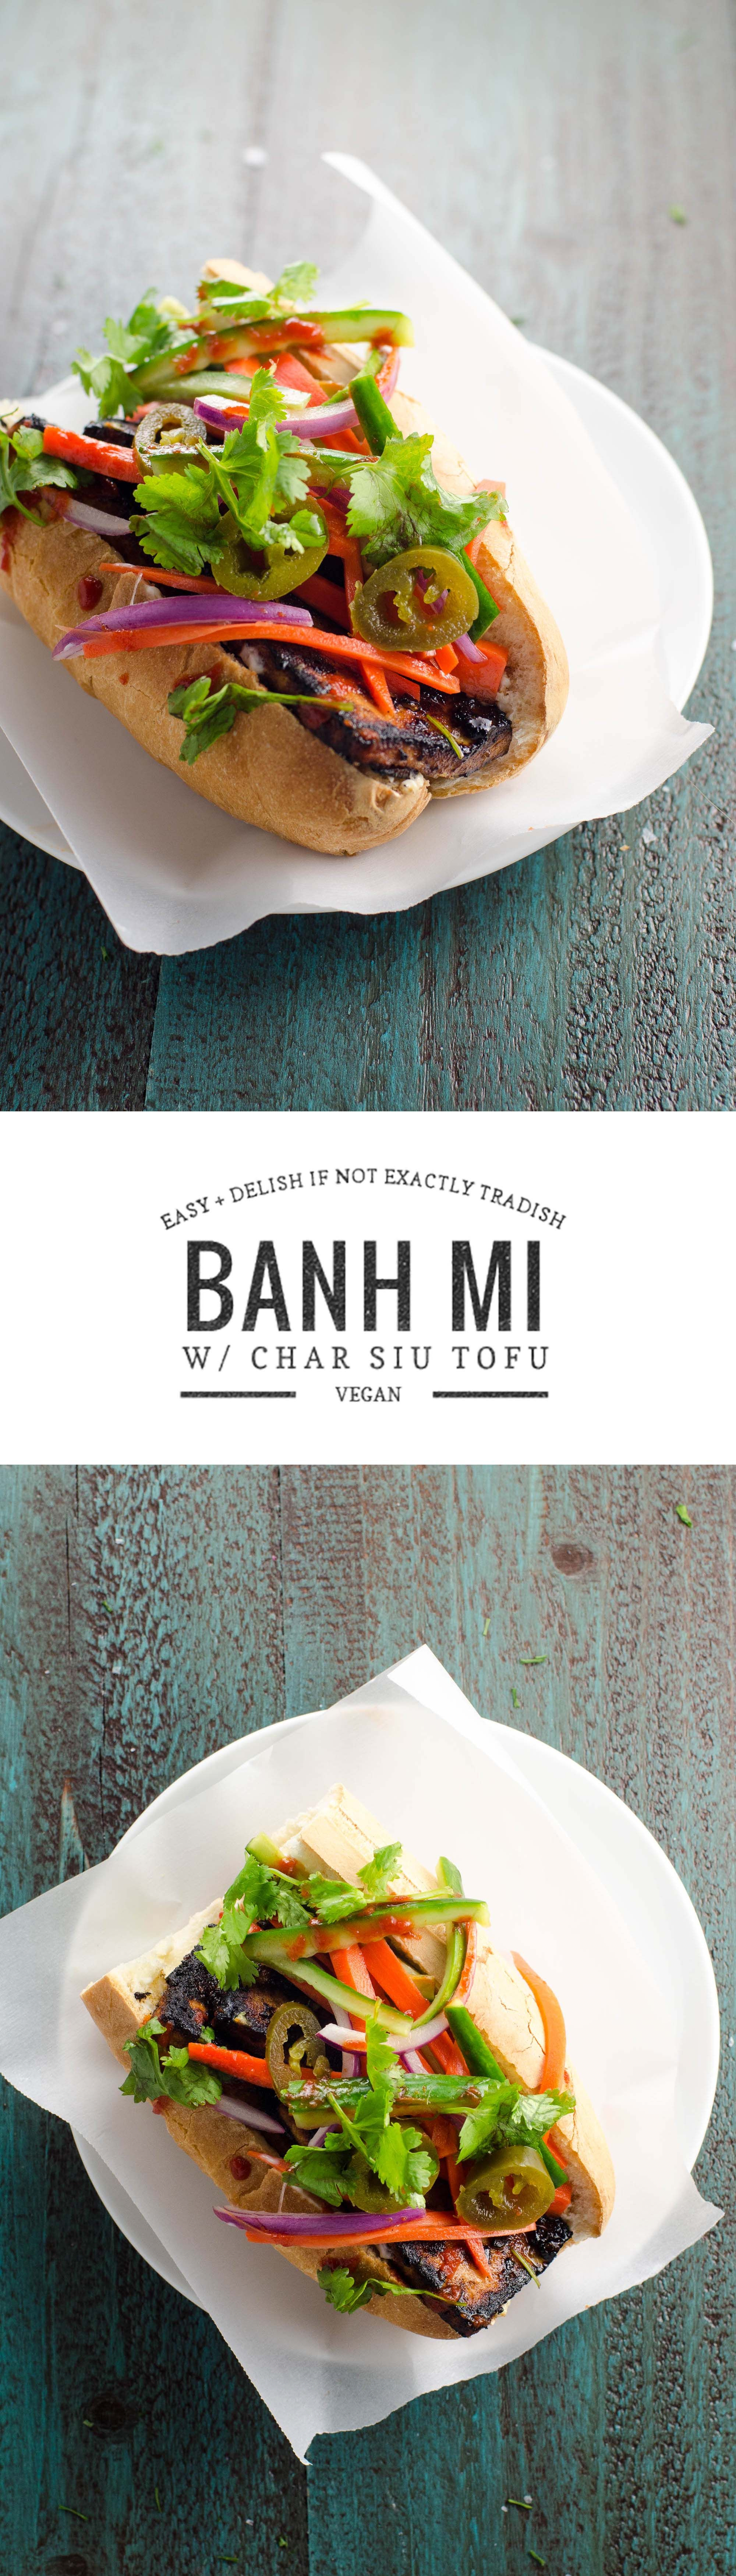 This vegan banh mi sandwich with char siu tofu isn't exactly authentic, but boy is it good. And it's yours in about half an hour.